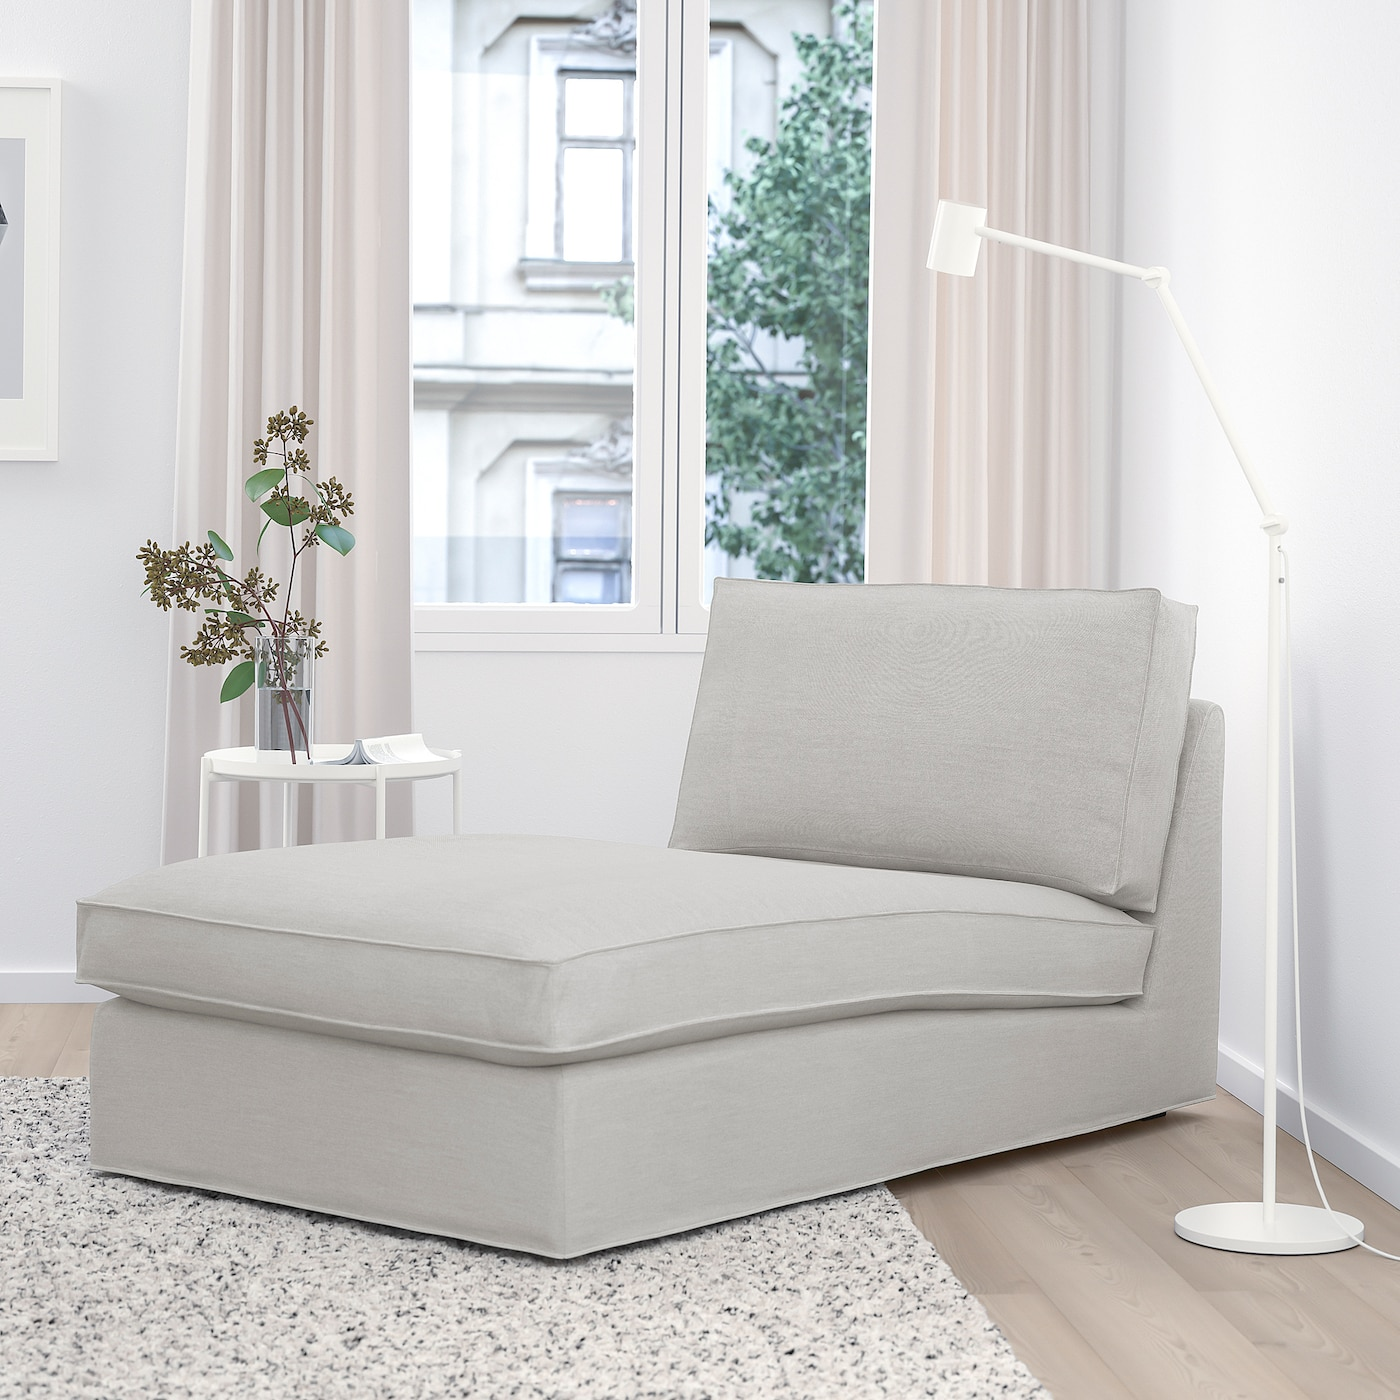 Kivik Ramna Light Grey Chaise Longue Ikea